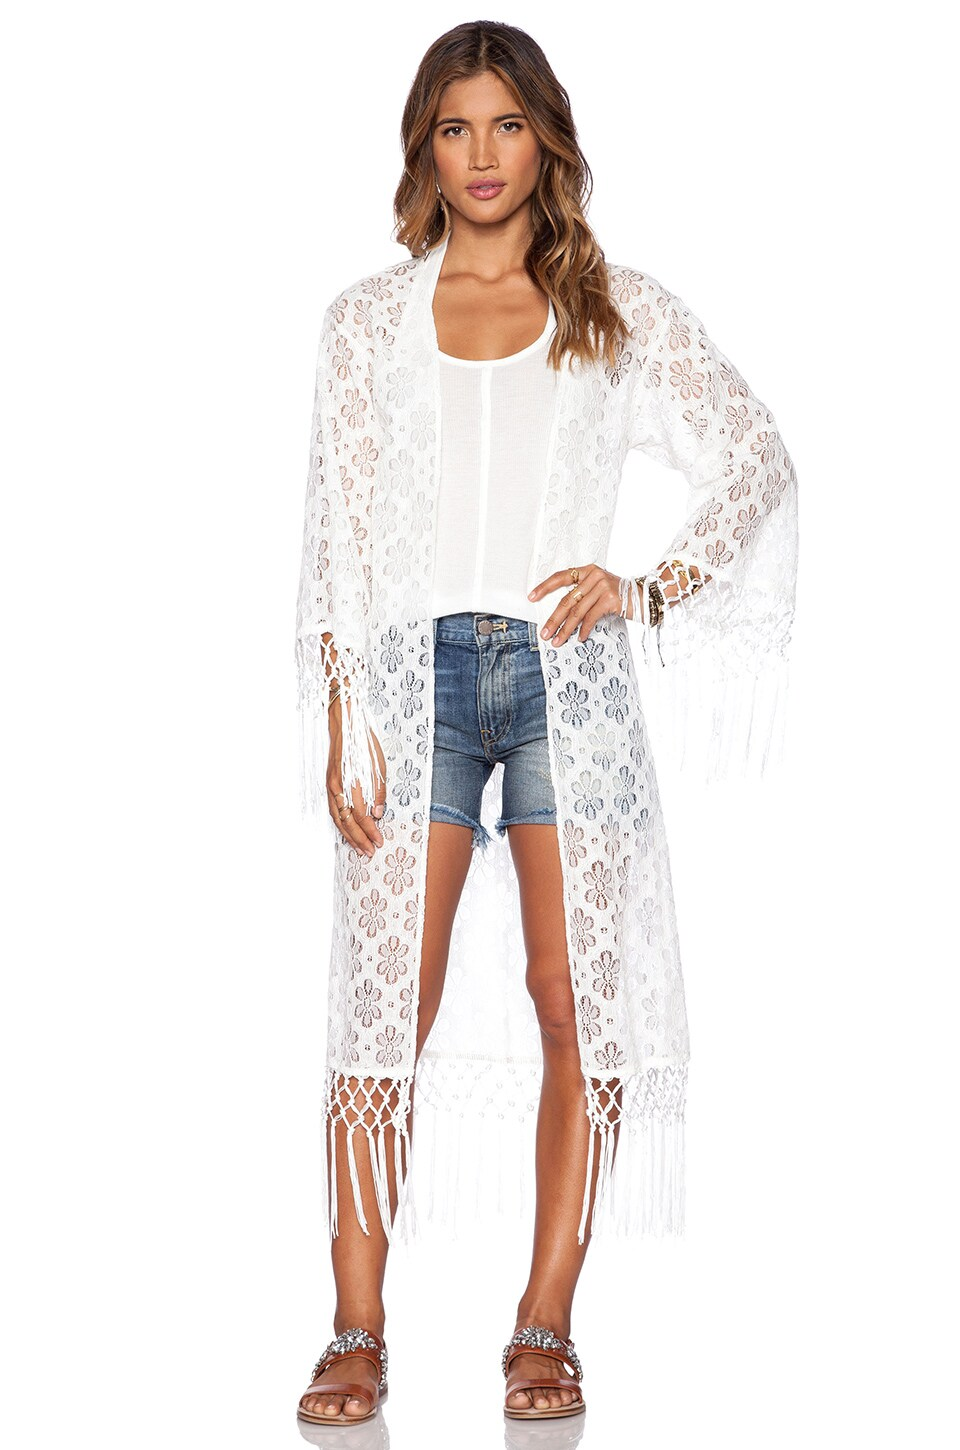 Raga Love Lace Caftan in White